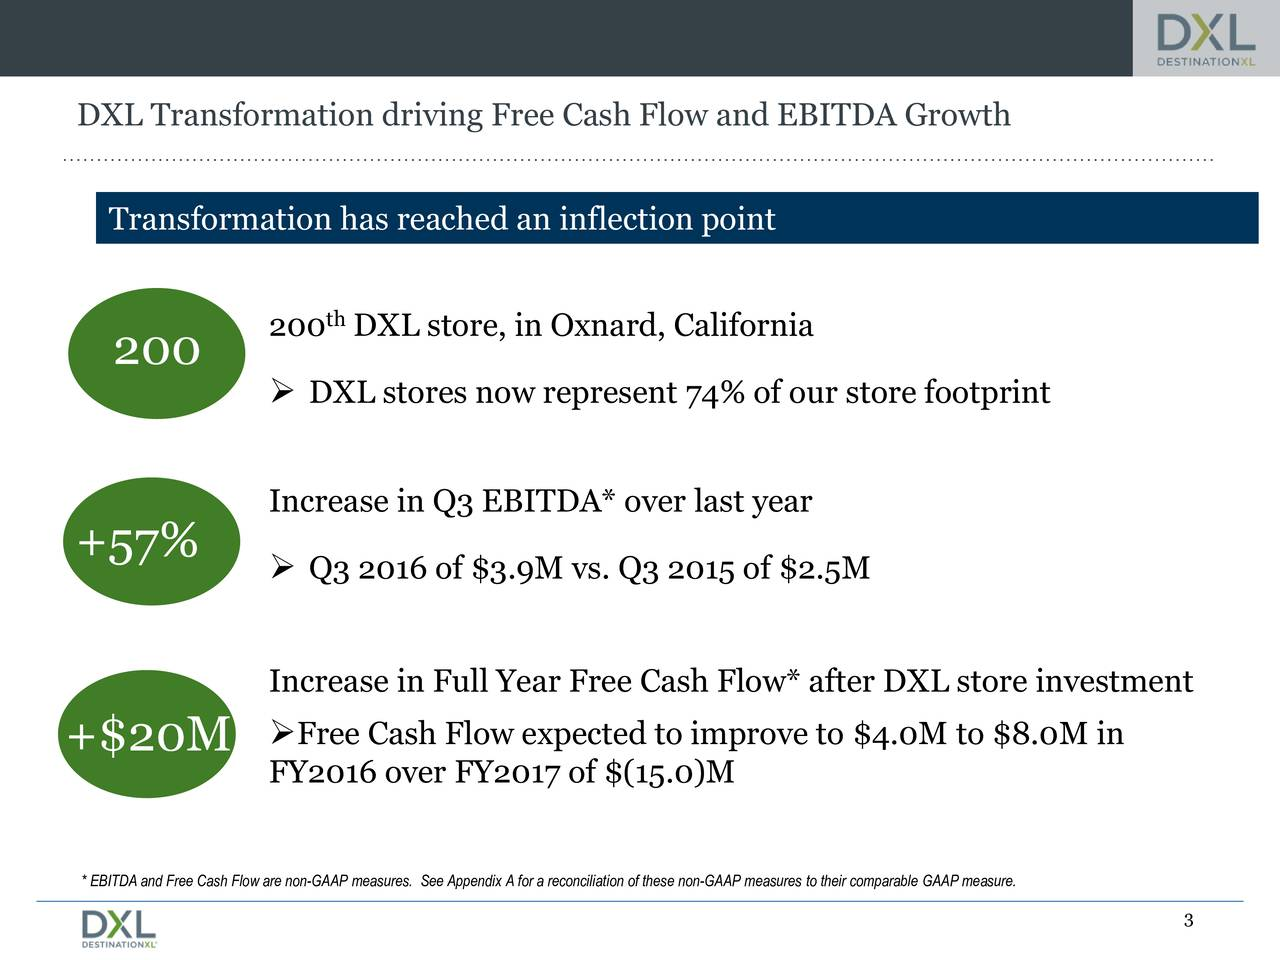 Transformation has reached an inflection point 200 DXL store, in Oxnard, California 200 DXL stores now represent 74% of our store footprint Increase in Q3 EBITDA* over last year +57%  Q3 2016 of $3.9M vs. Q3 2015 of $2.5M Increase in Full Year Free Cash Flow* after DXL store investment Free Cash Flow expected to improve to $4.0M to $8.0M in +$20M FY2016 over FY2017 of $(15.0)M * EBITDA and Free Cash Flow are non-GAAP measures. See Appendix A for a reconciliation of these non-GAAP measures to their comparable GAAP measure. 3